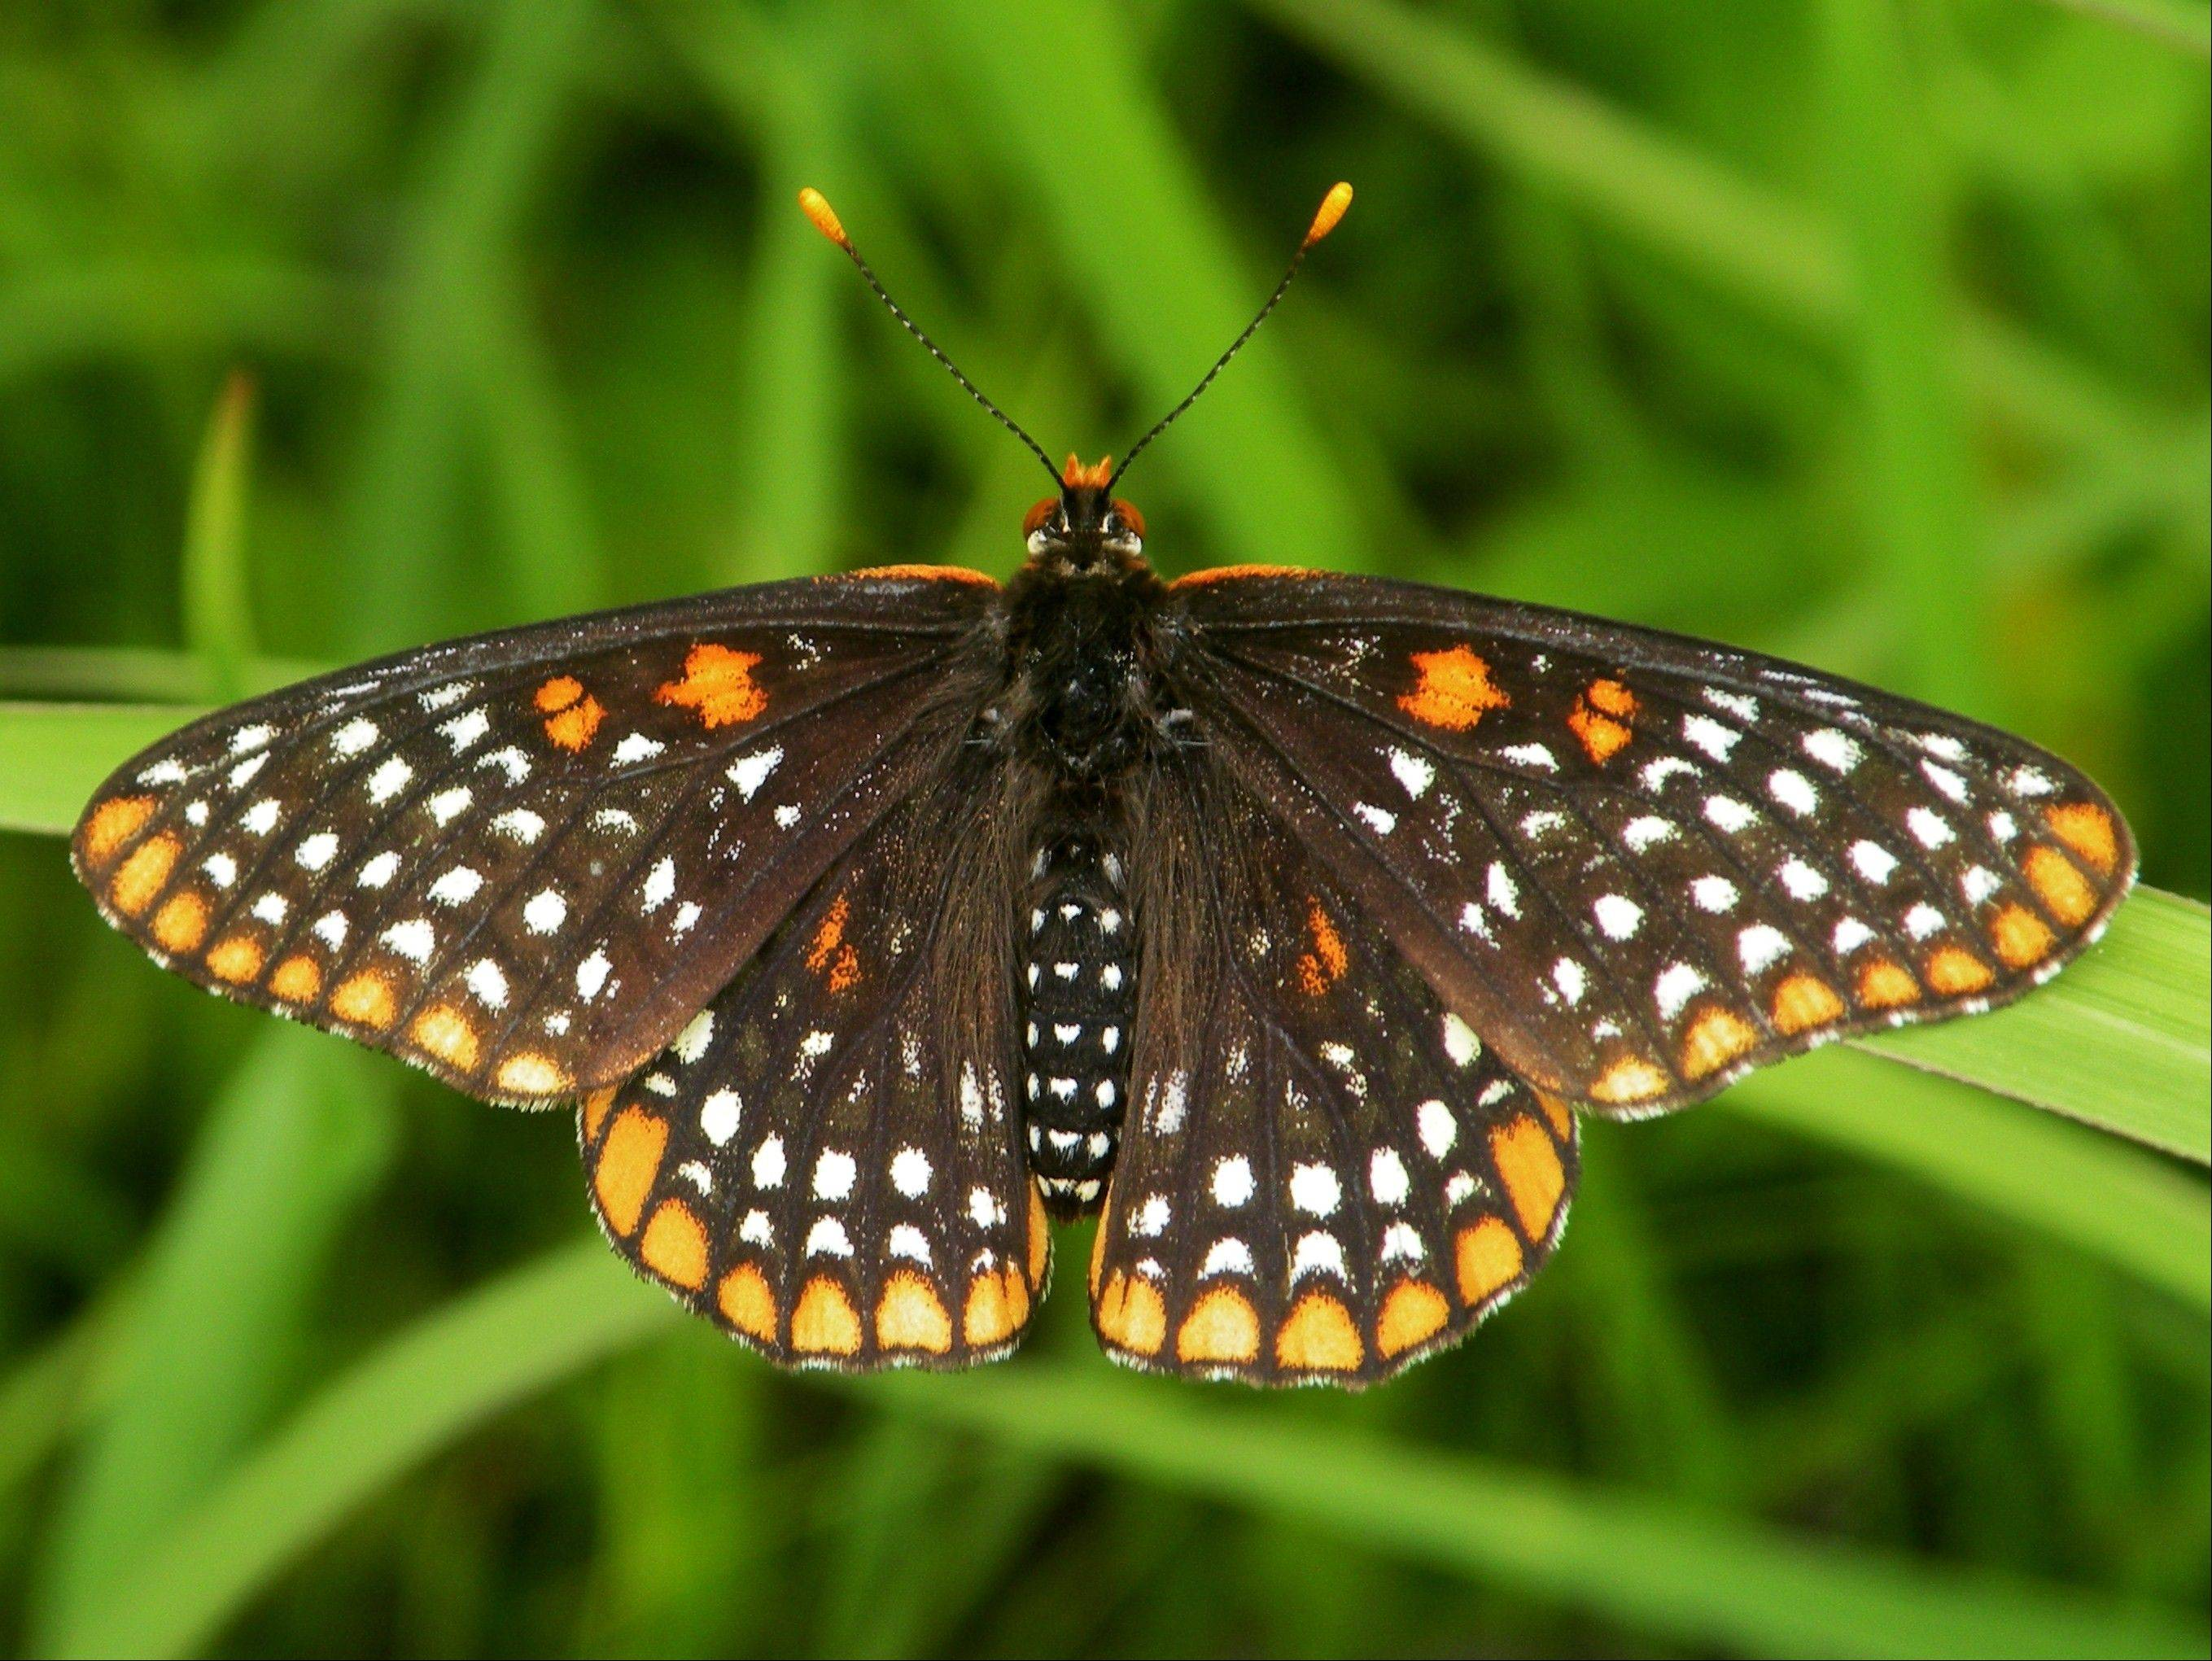 A wetlands butterfly that needs healthy natural environments to survive, the Baltimore Checkerspot is rare in the suburbs.